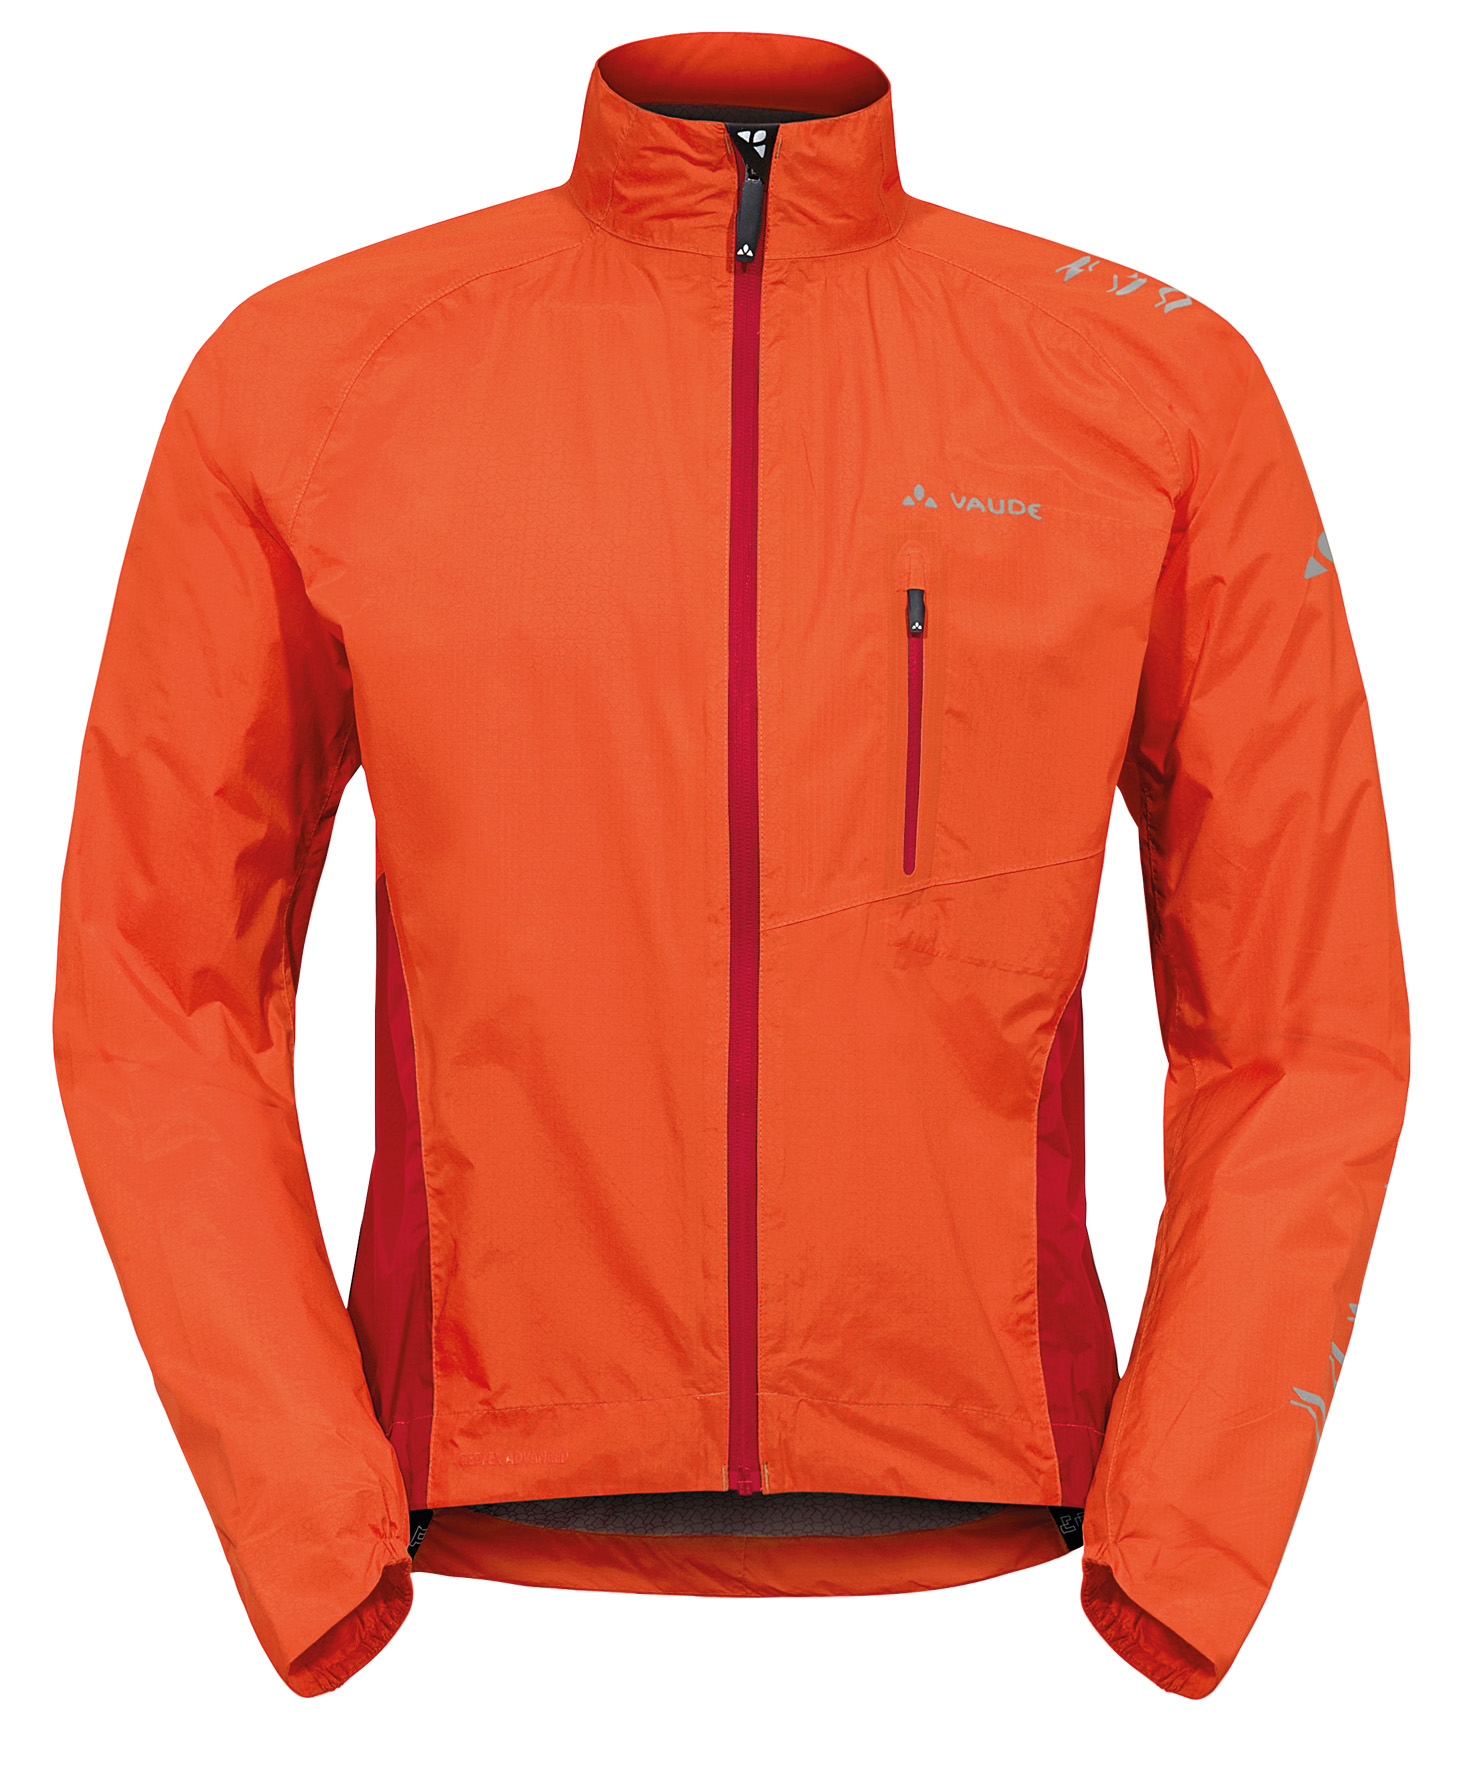 VAUDE Men´s Spray Jacket IV glowing red Größe L - schneider-sports